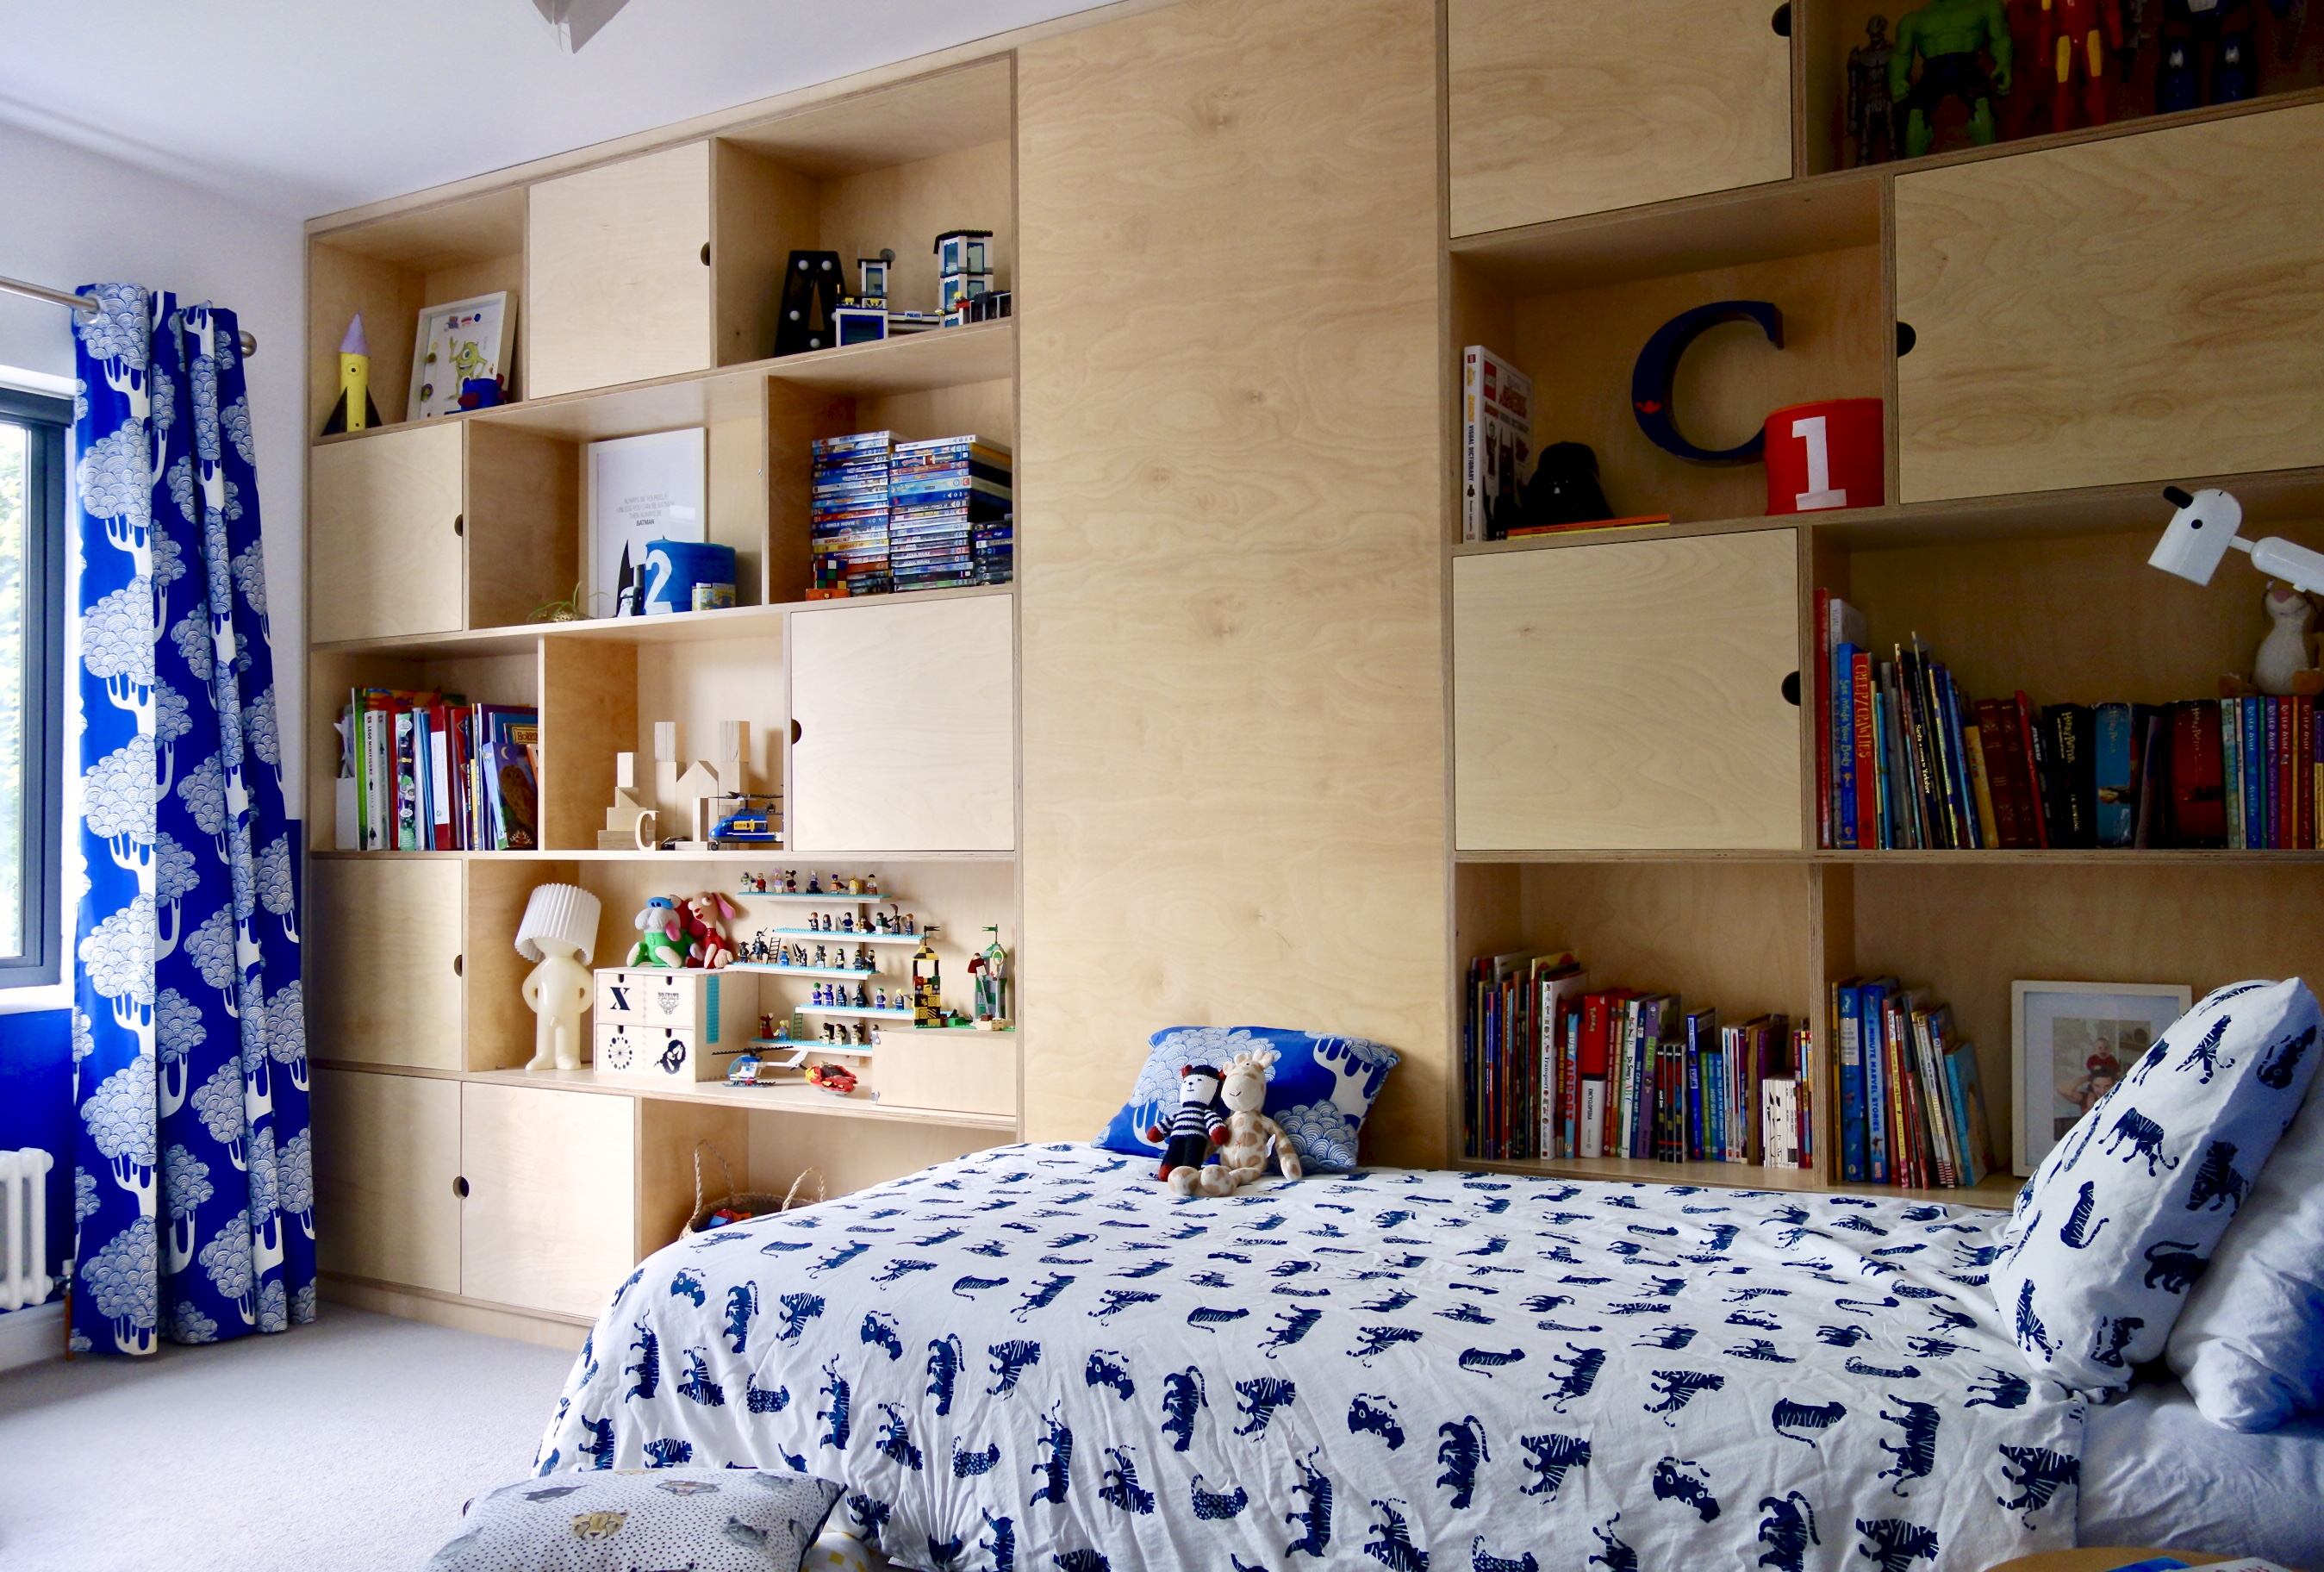 Bespoke built-in storage